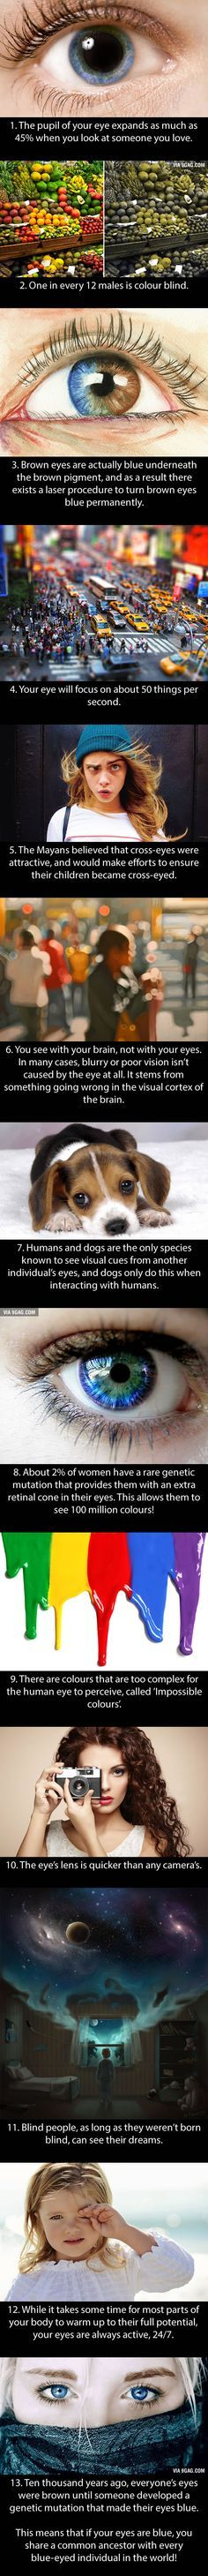 13 incredible facts about your eyes - 9GAG